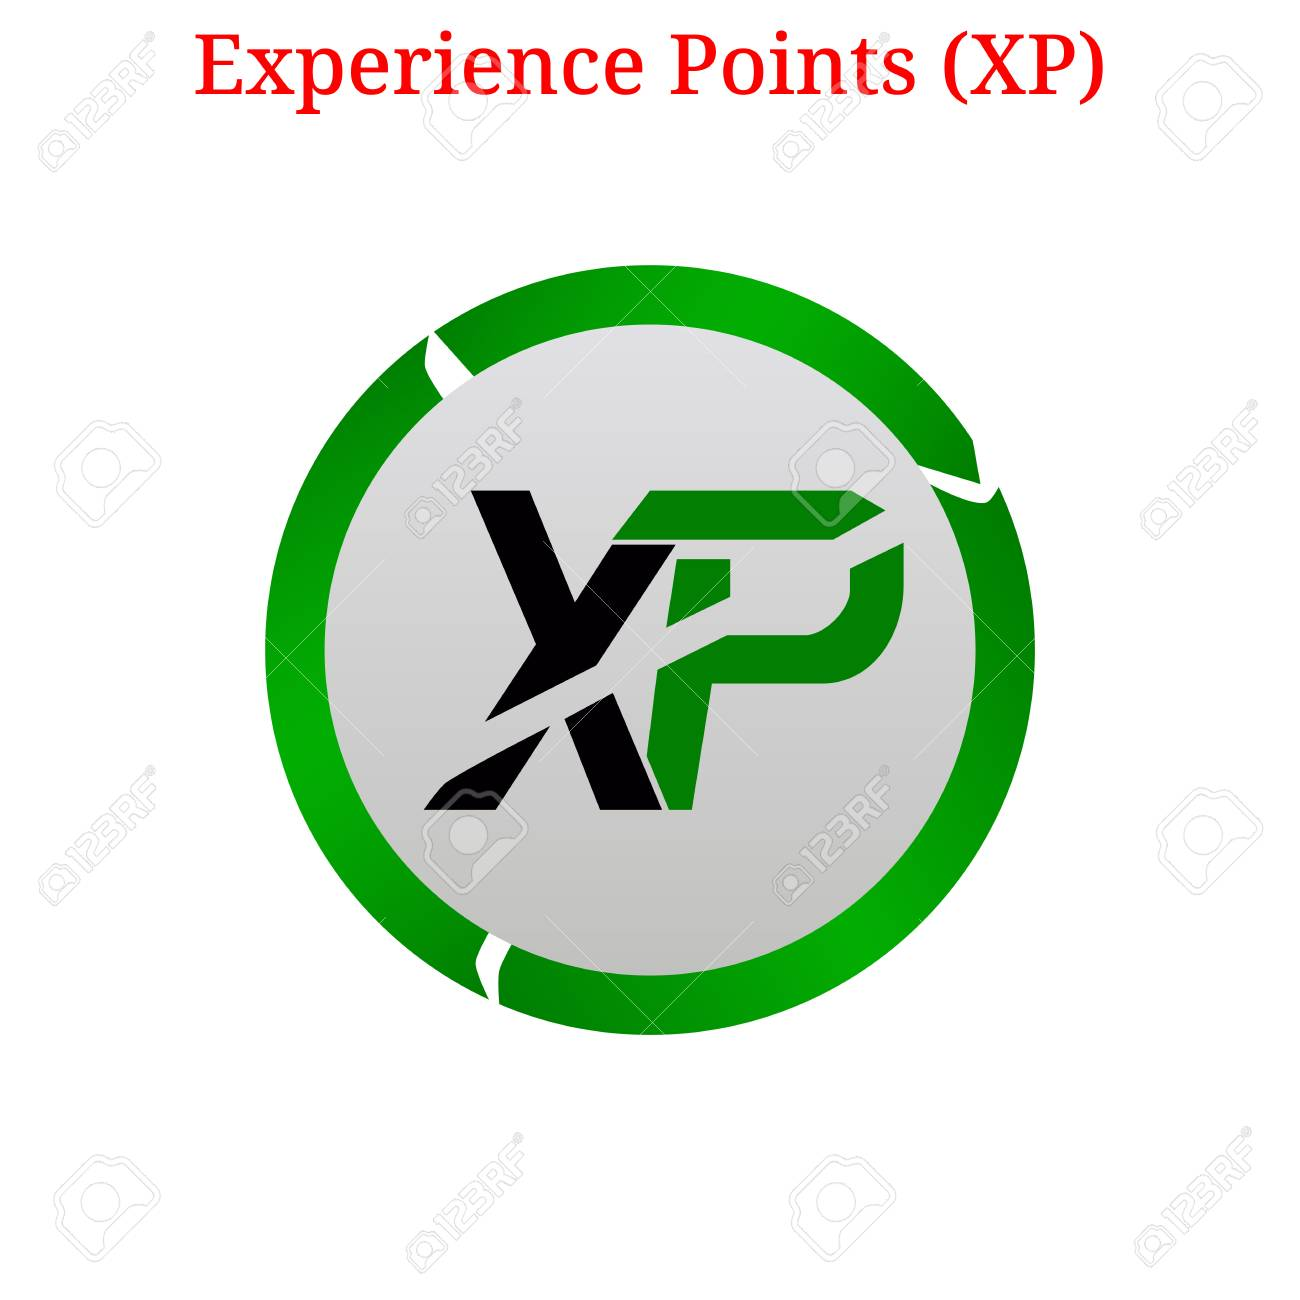 How to buy xp cryptocurrency